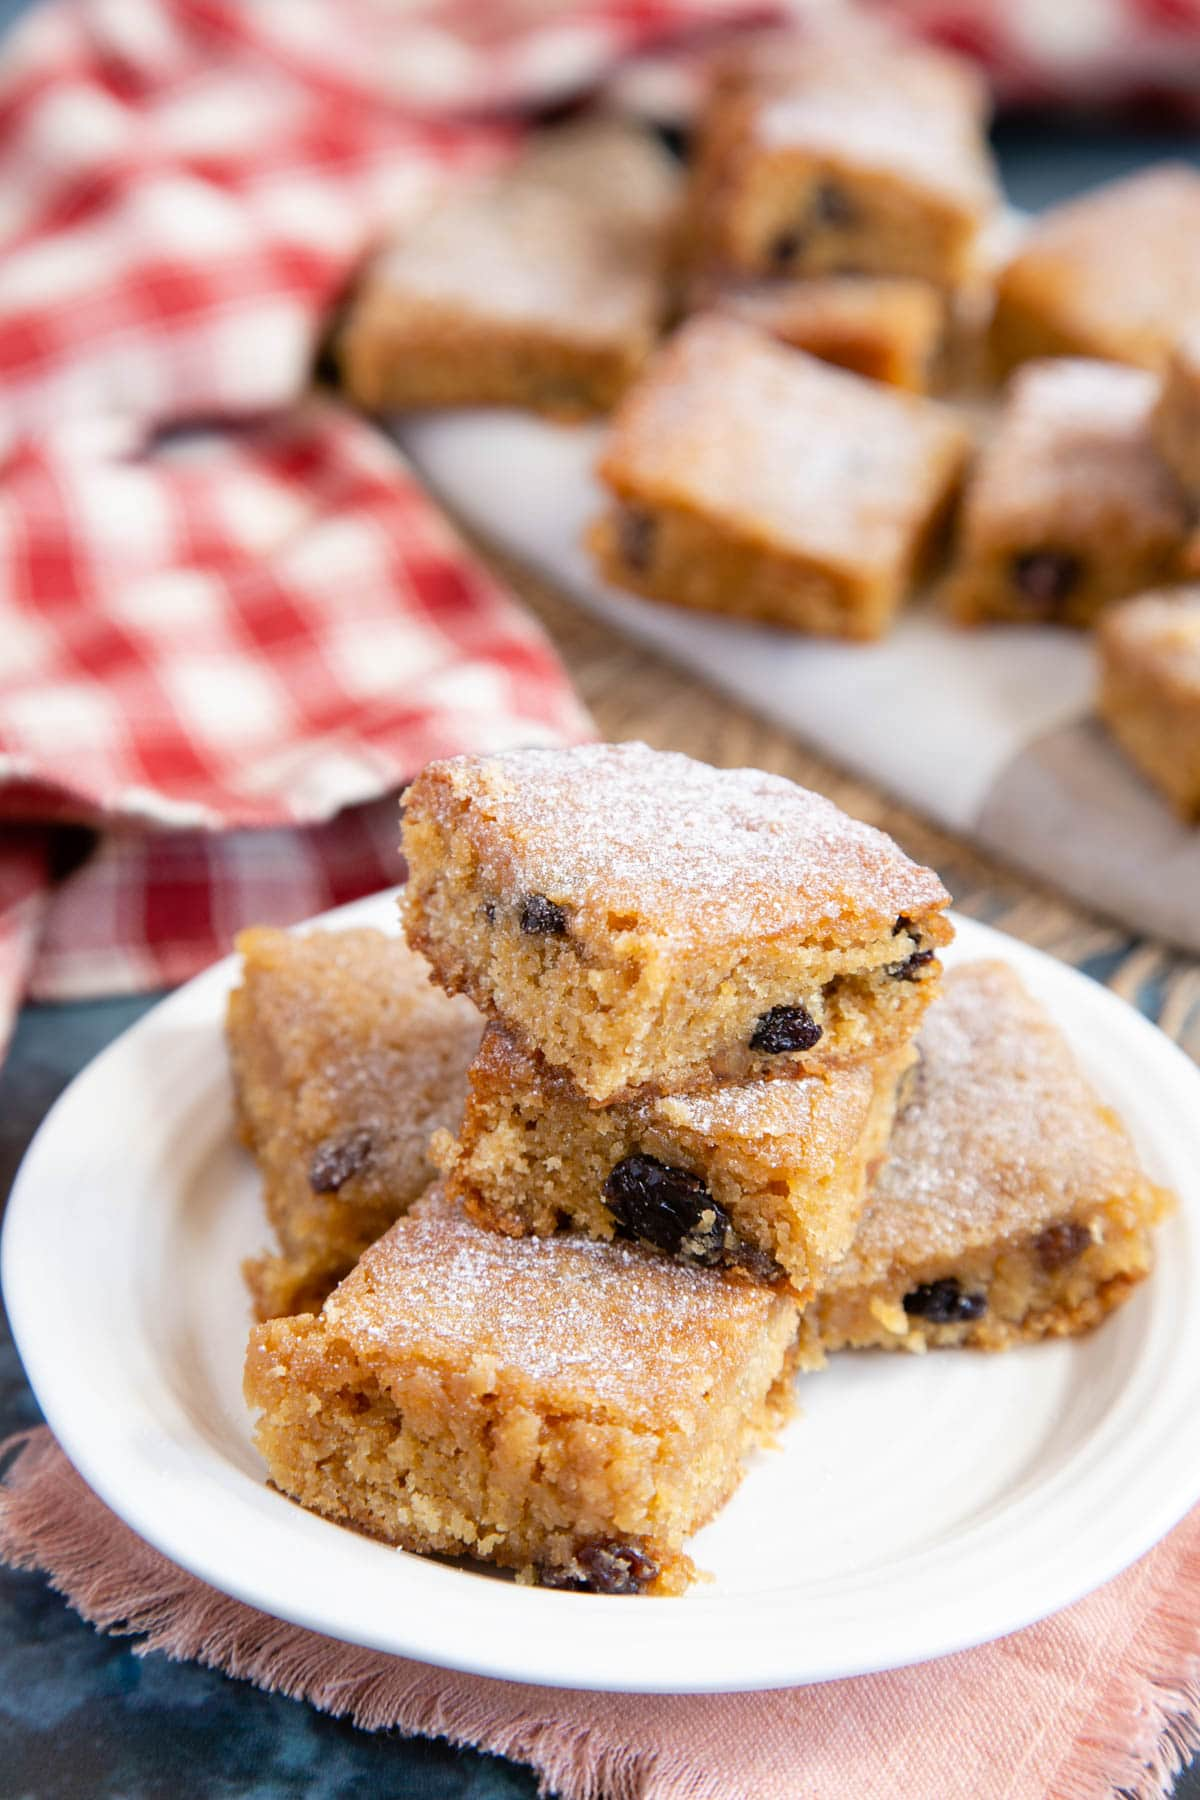 Mincemeat blondies, cut into squares showing the soft centre and plump spiced fruit